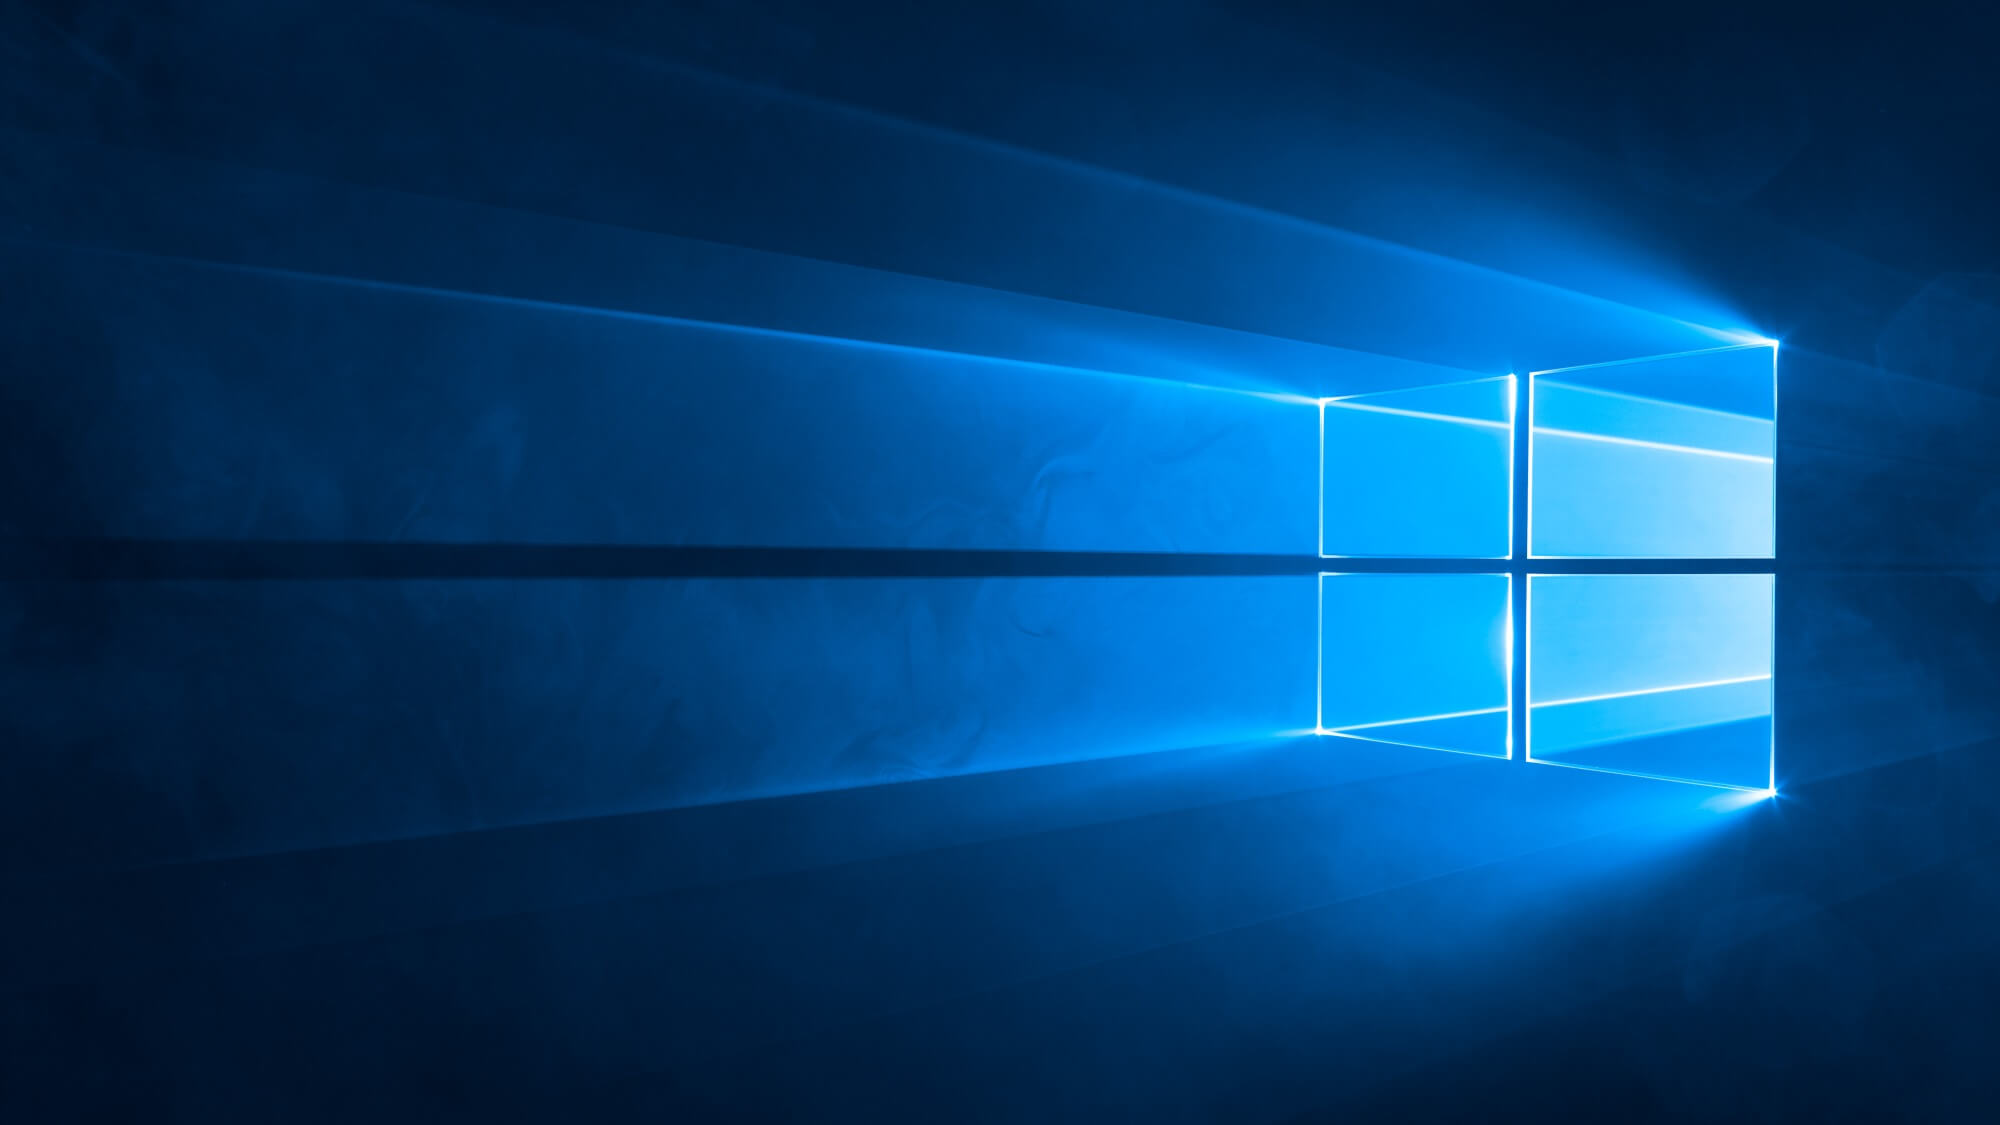 Microsoft releases new Windows 10 preview with mobile broadband improvements